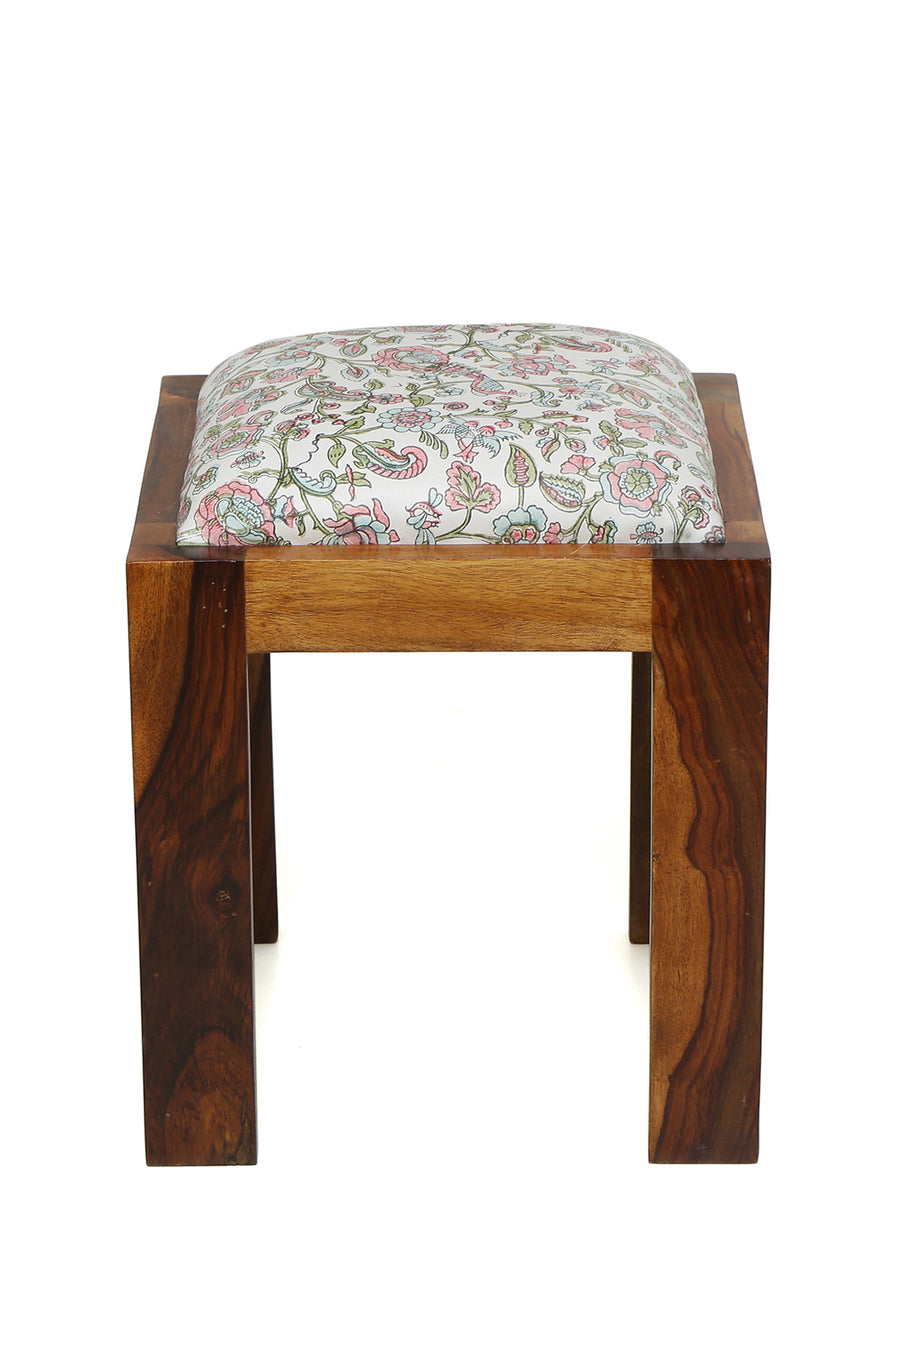 Westend Garden - Leather Side Stool